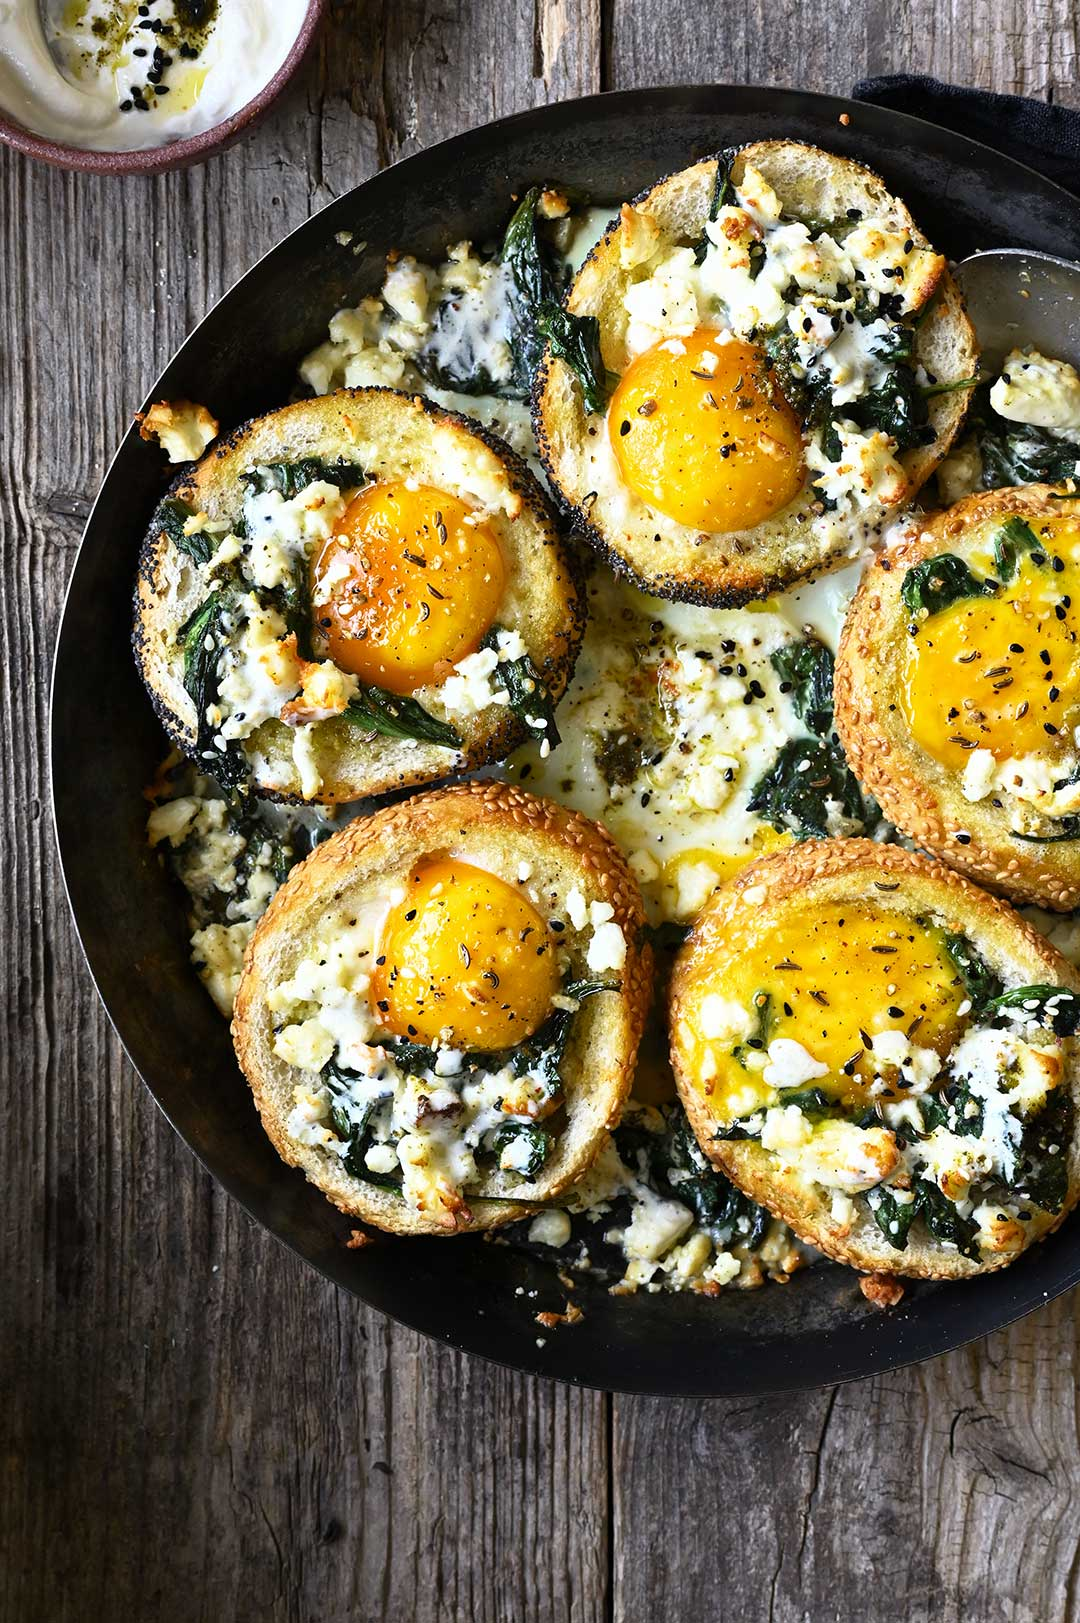 serving dumplings | Baked za'atar egg buns with spinach and feta